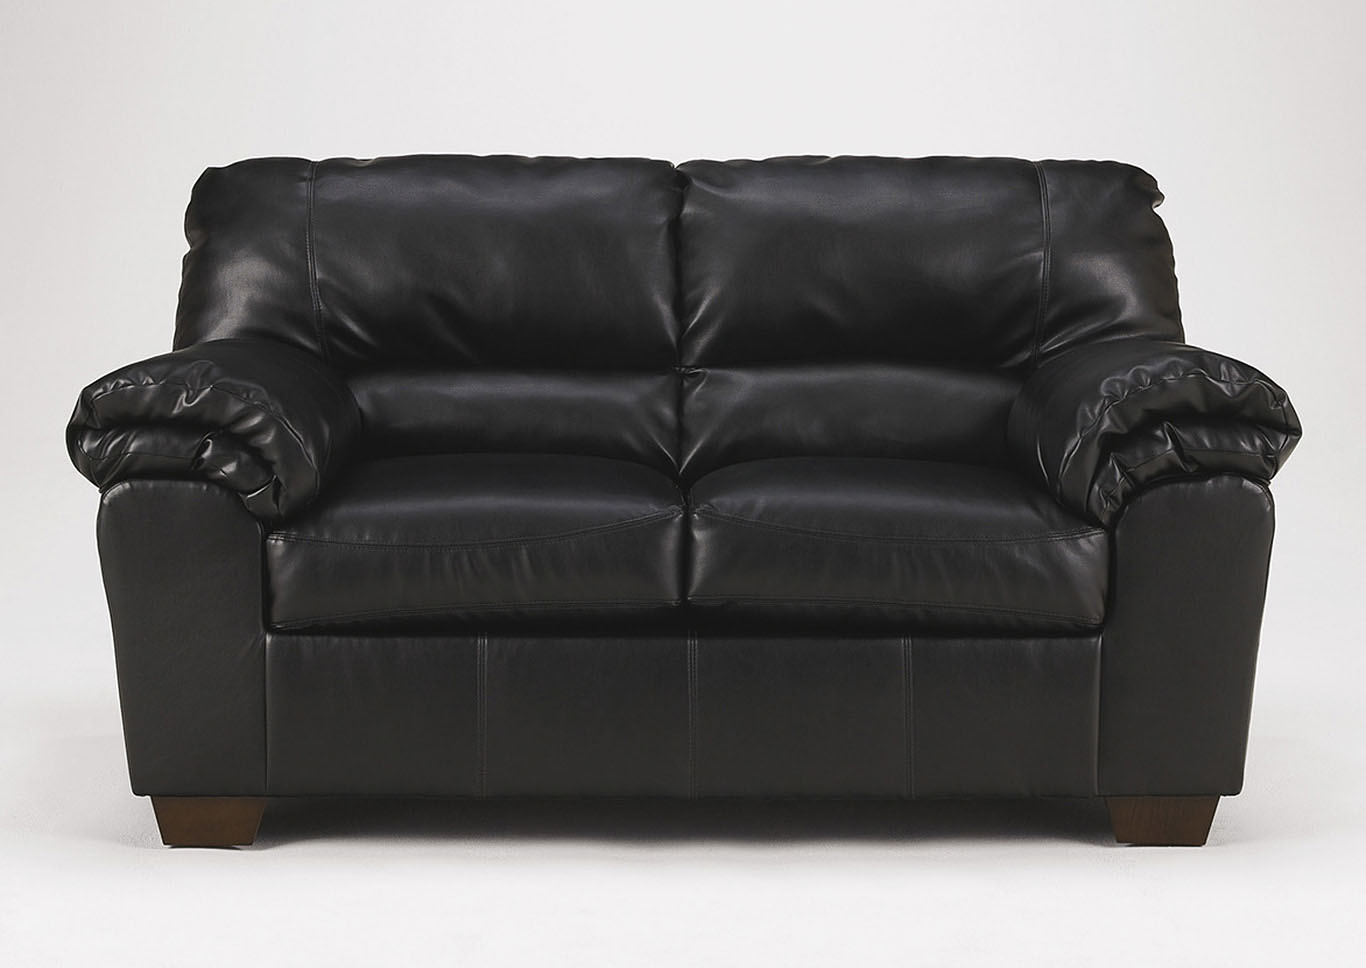 Commando Black Loveseat,Signature Design by Ashley